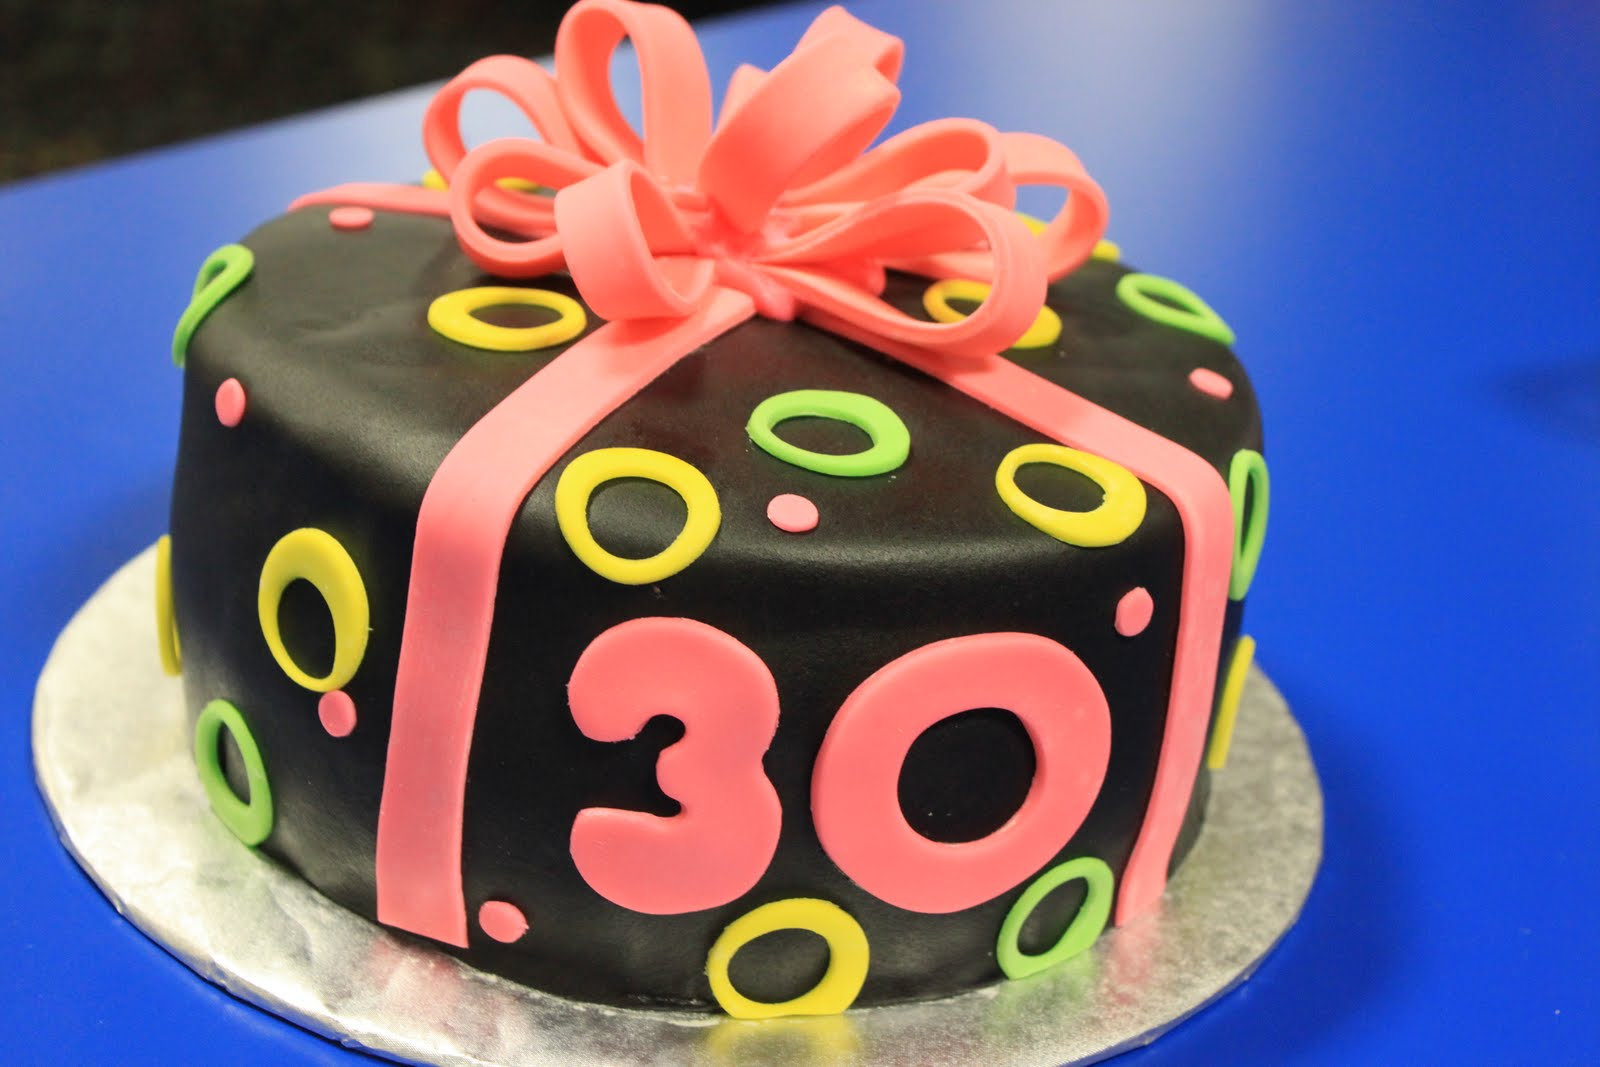 Cake Designs 30 Years Old Dmost For